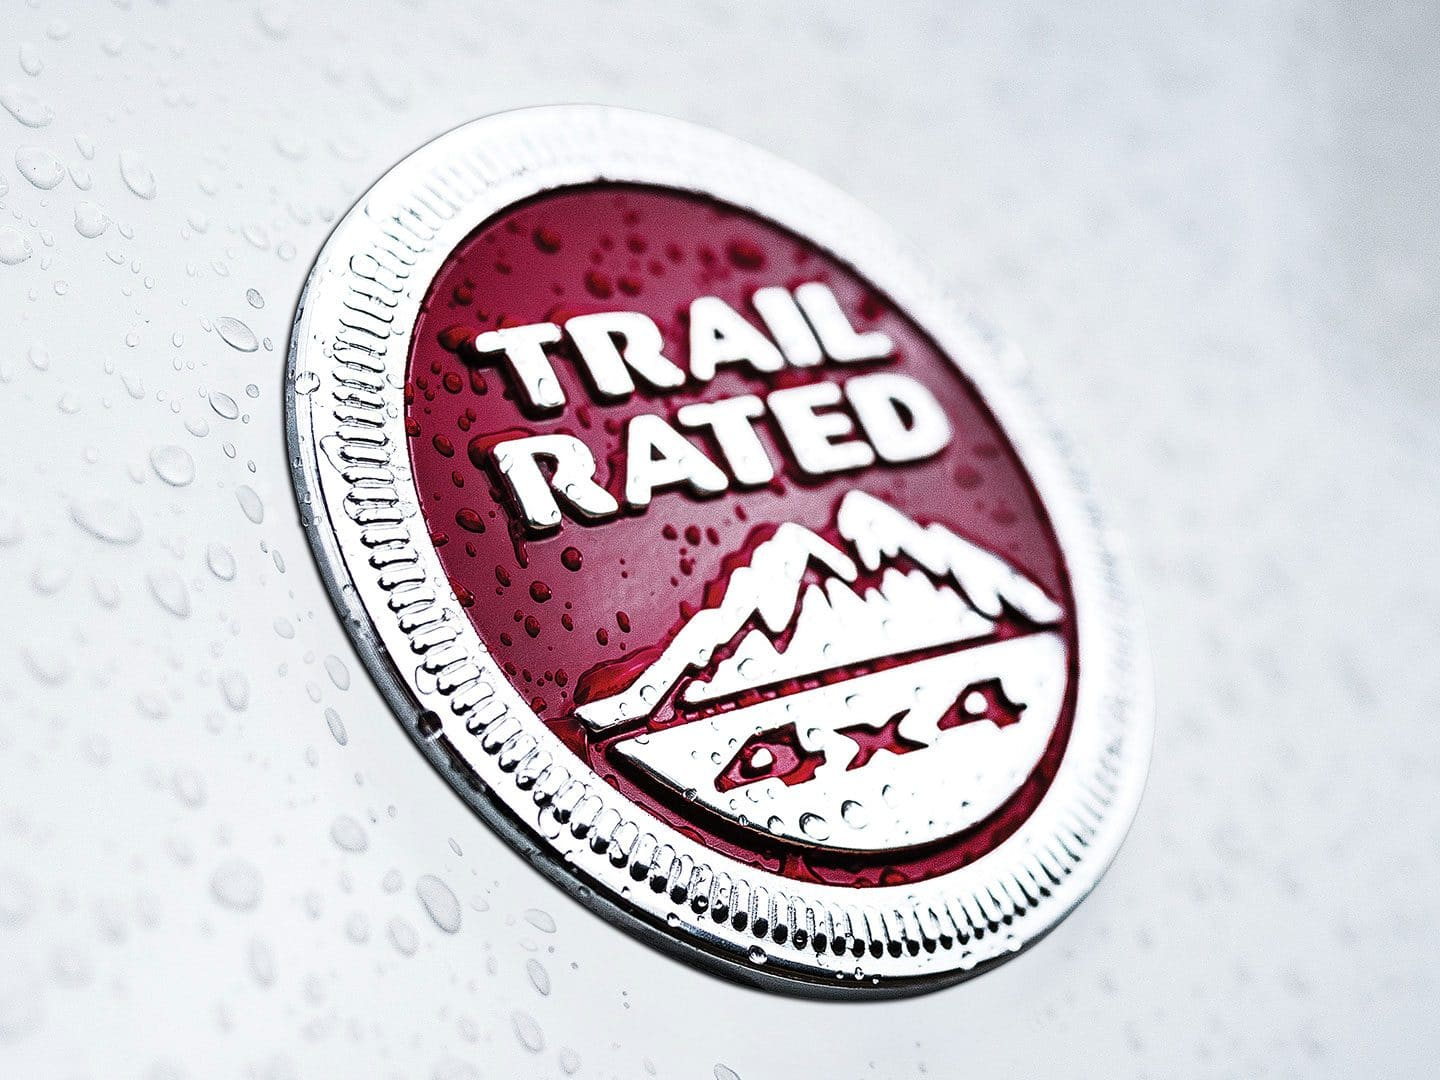 Jeep Compass Trailhawk Trail Rated® Badge